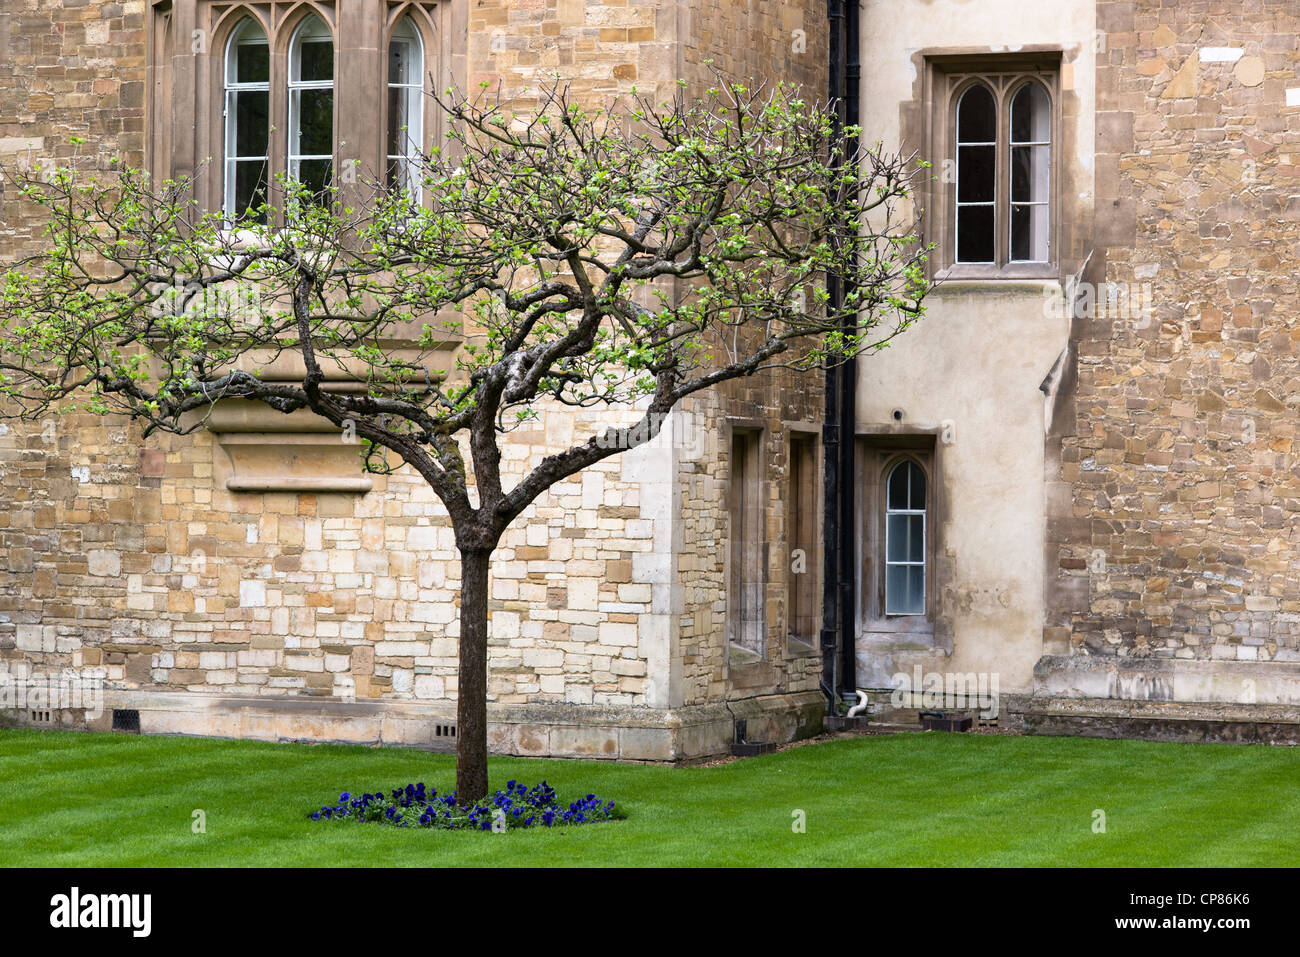 Isaac Newton Apple Tree amongst old sandstone walls of Trinity College, Cambridge University buildings. UK. - Stock Image